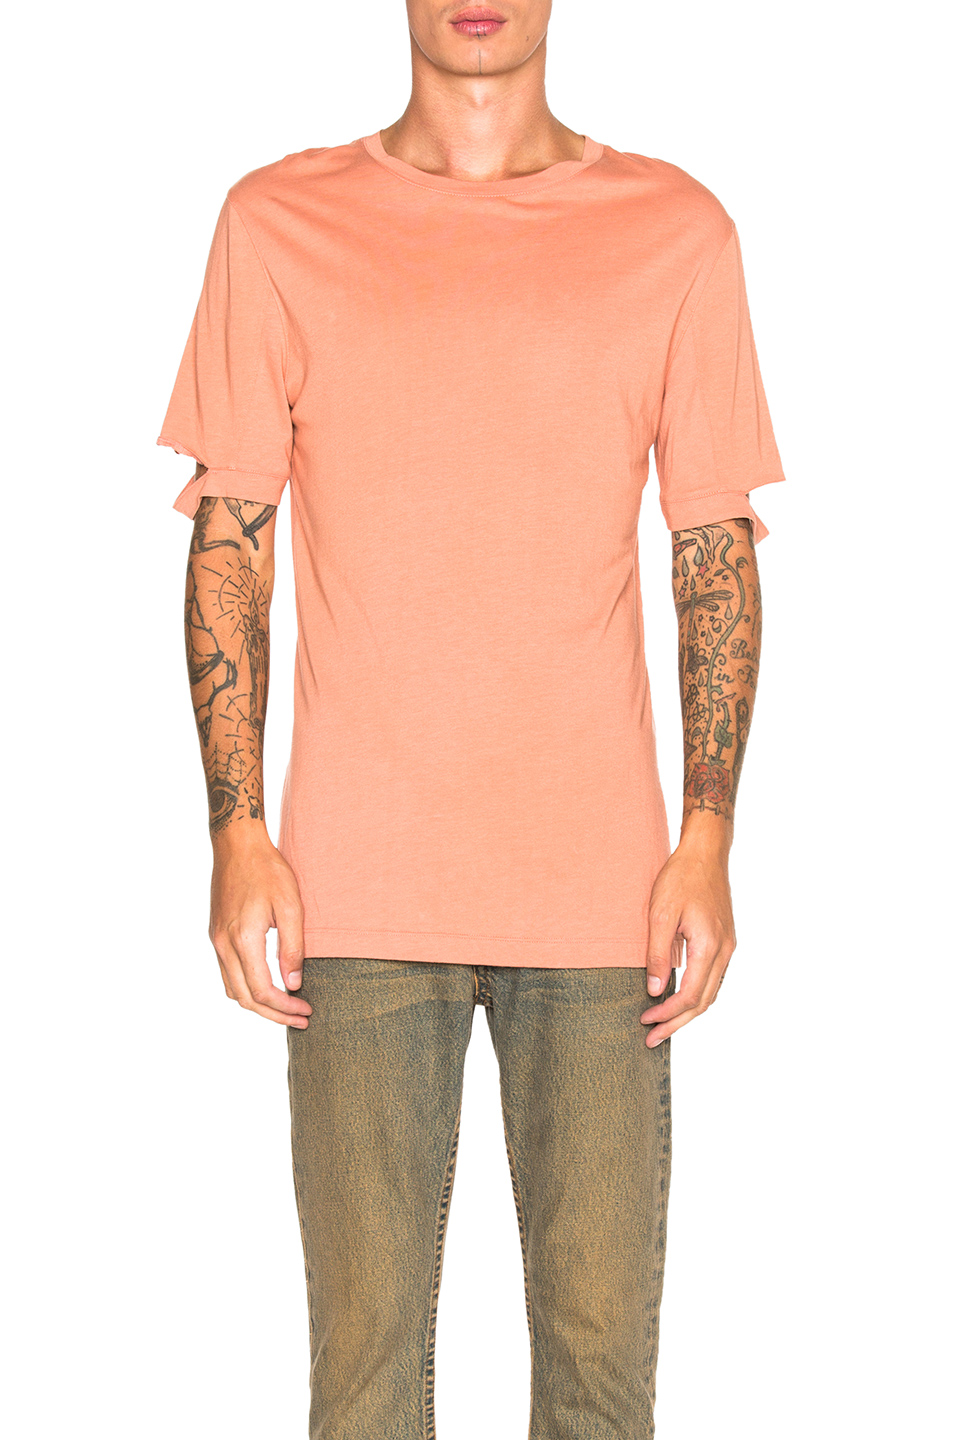 Helmut Lang Standard Fit Cut Hem Tee in Orange